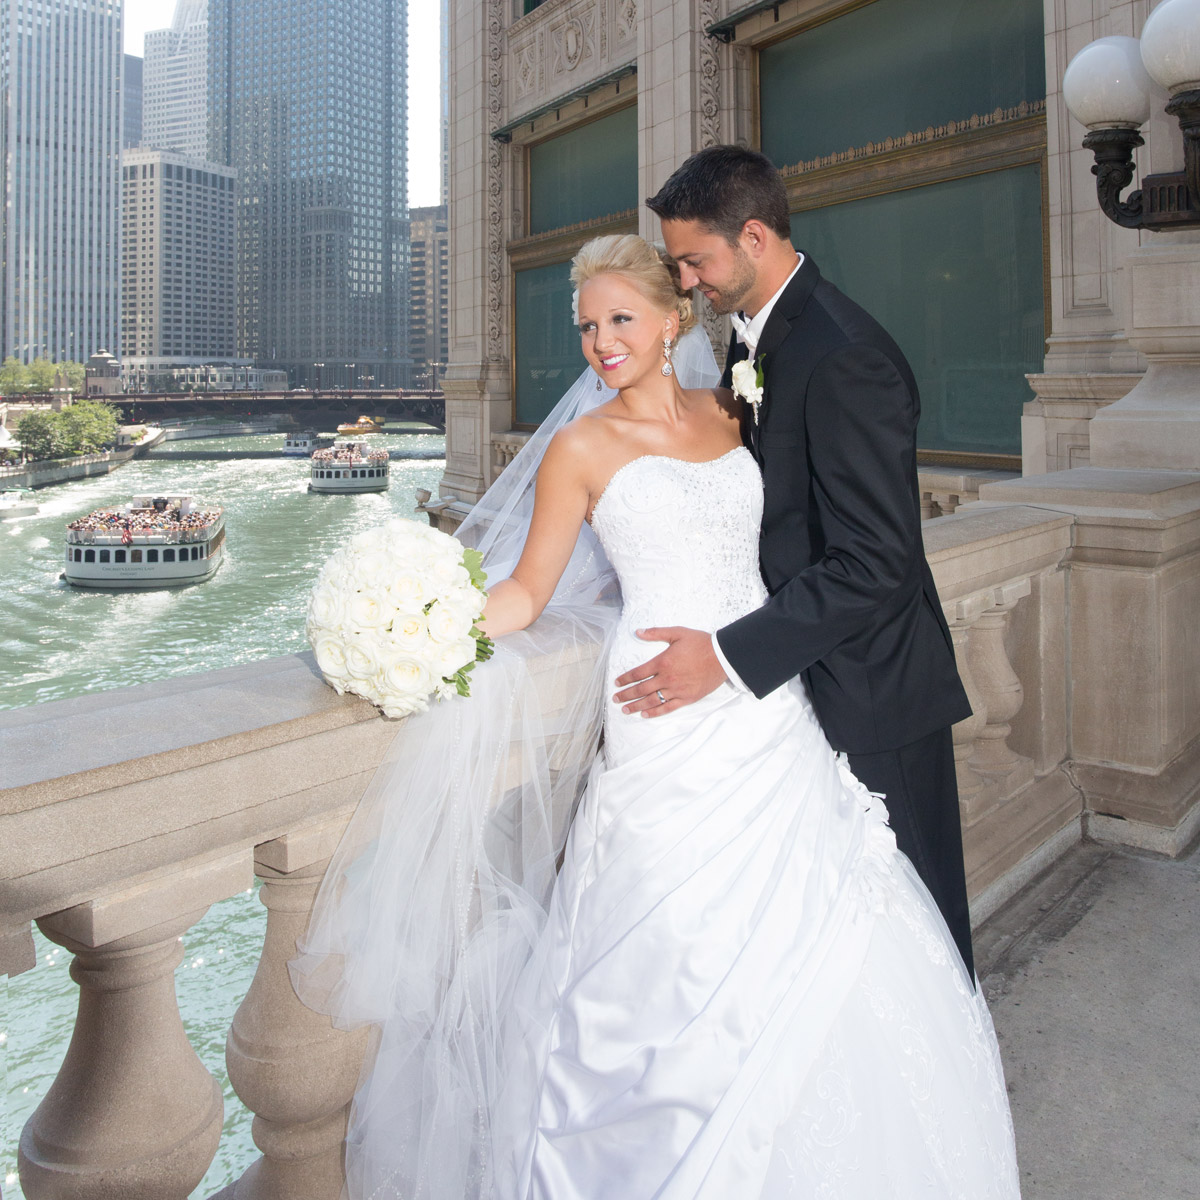 Best Chicago Wedding Venues Photos